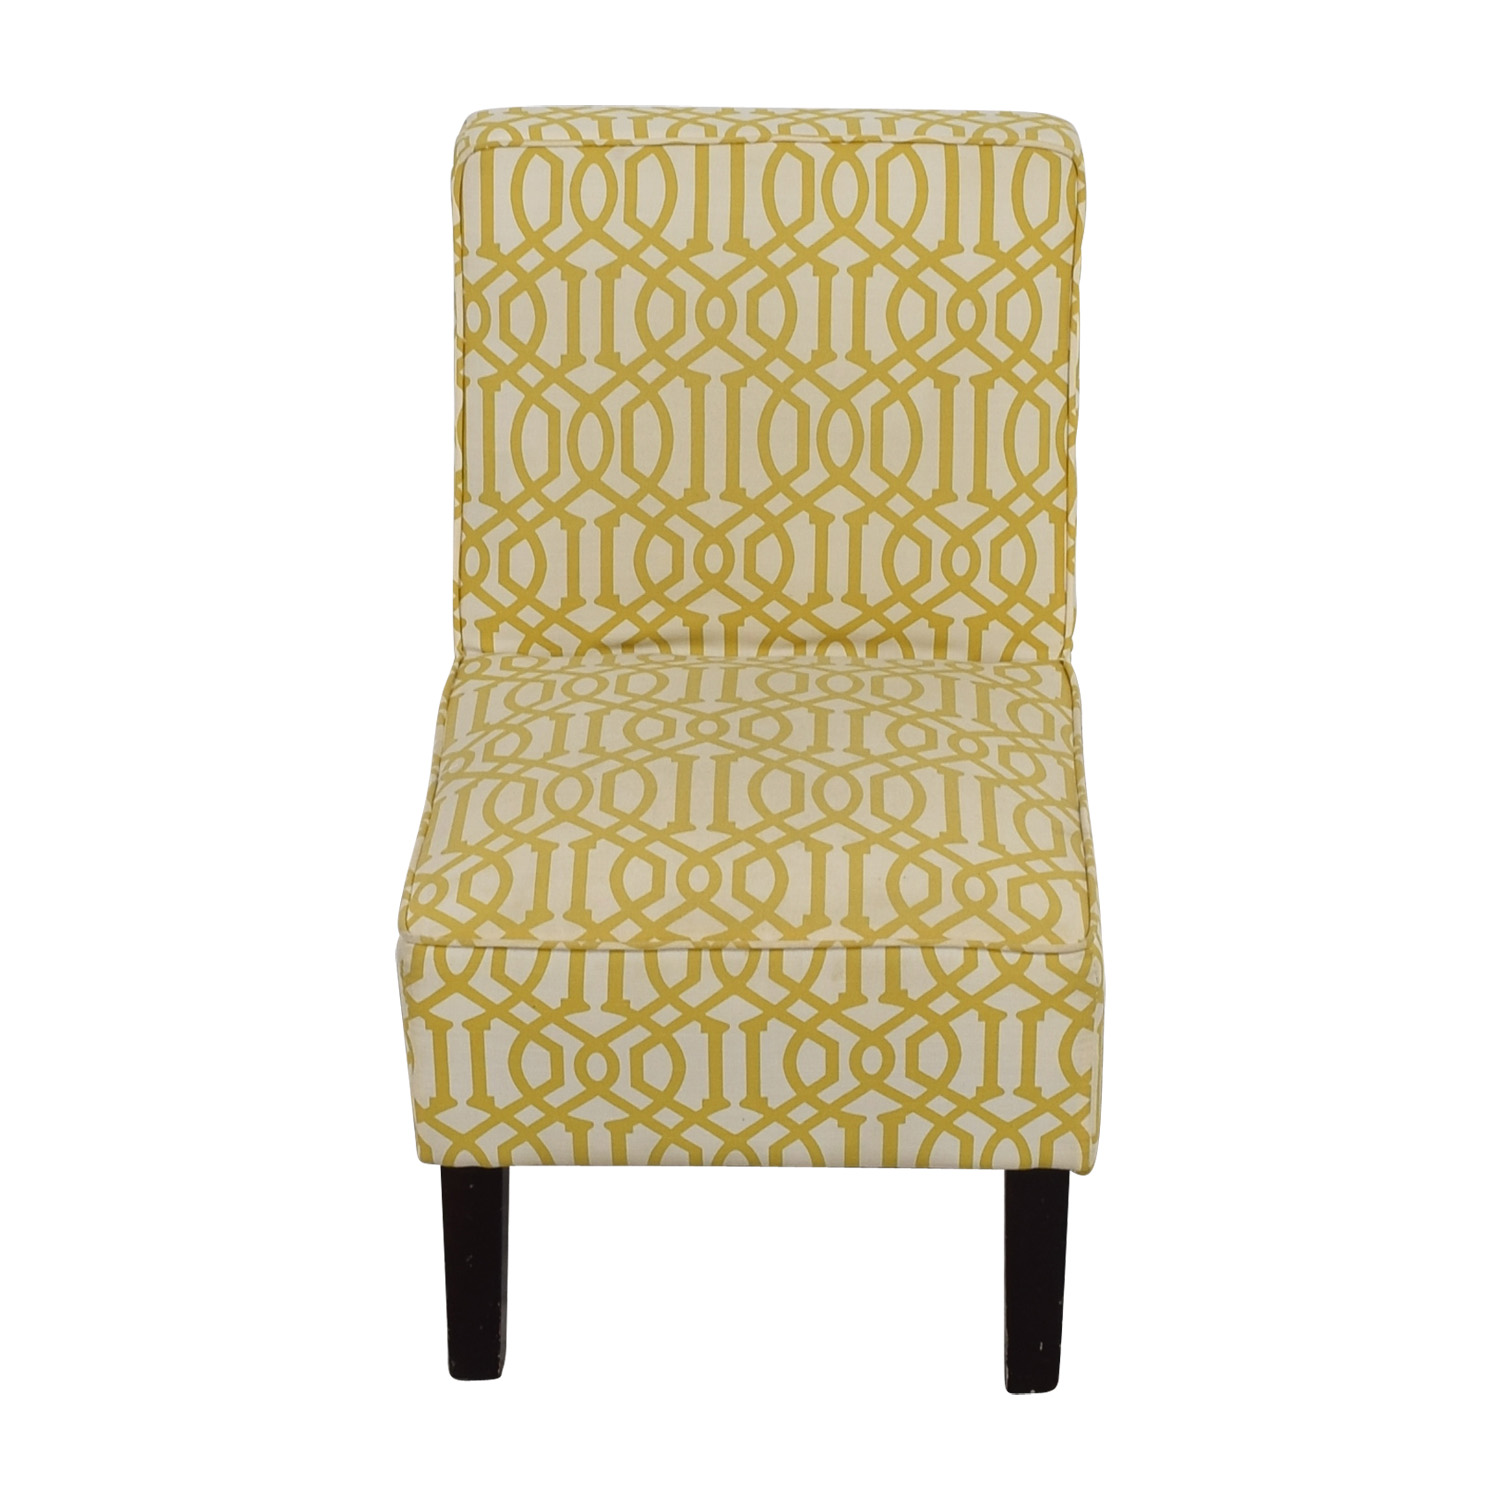 Accent Chairs Prices 85 Off Yellow And White Accent Chair Chairs